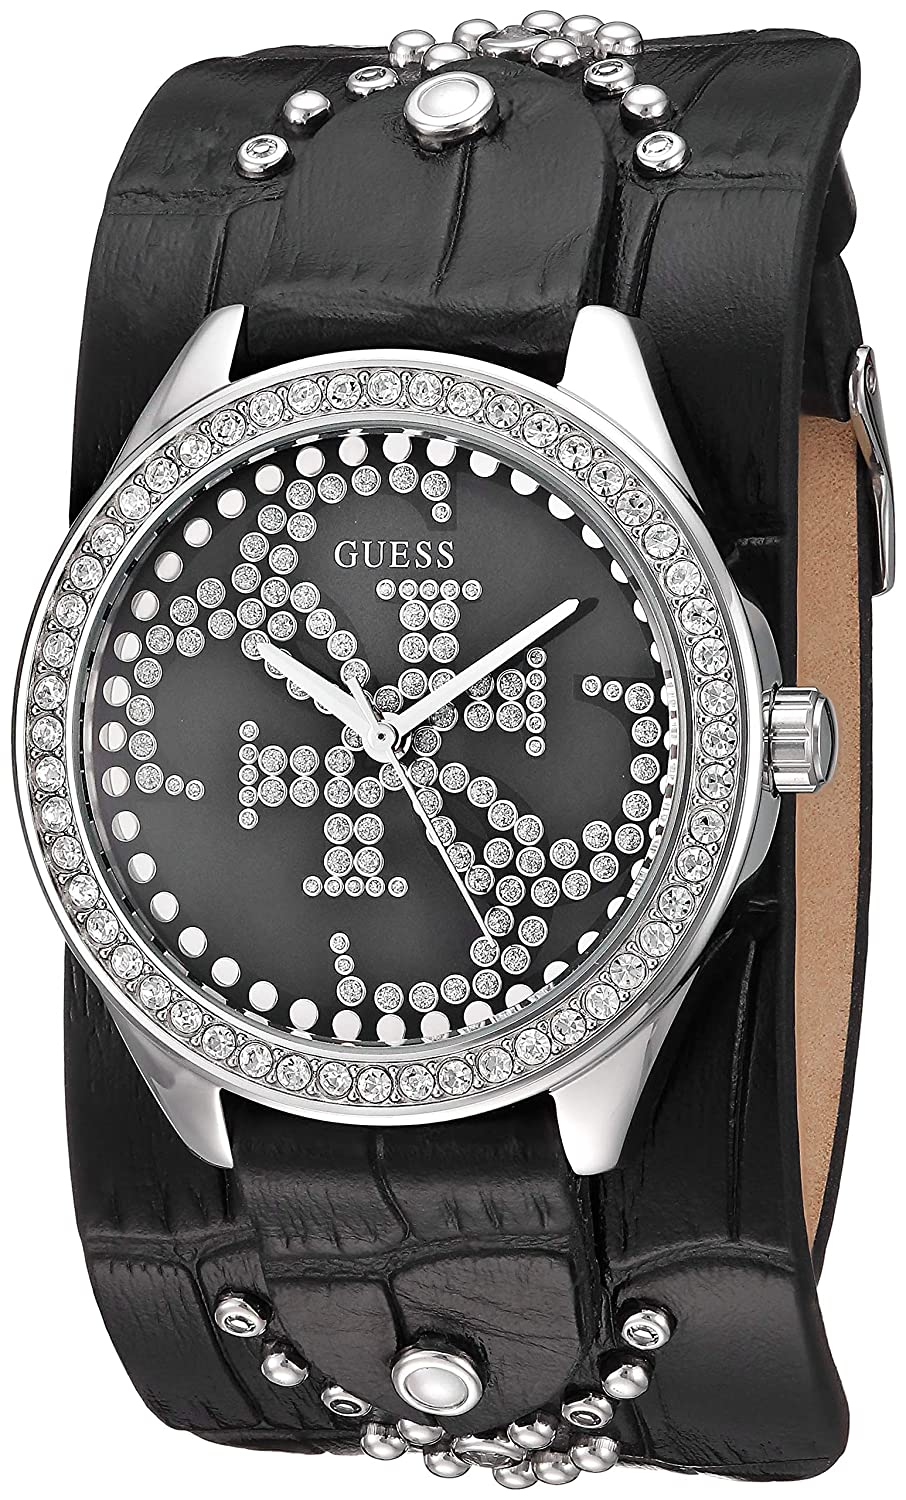 CDM product GUESS Women's Quartz Stainless Steel and Leather Watch, Color:Black (Model: U1140L1) big image